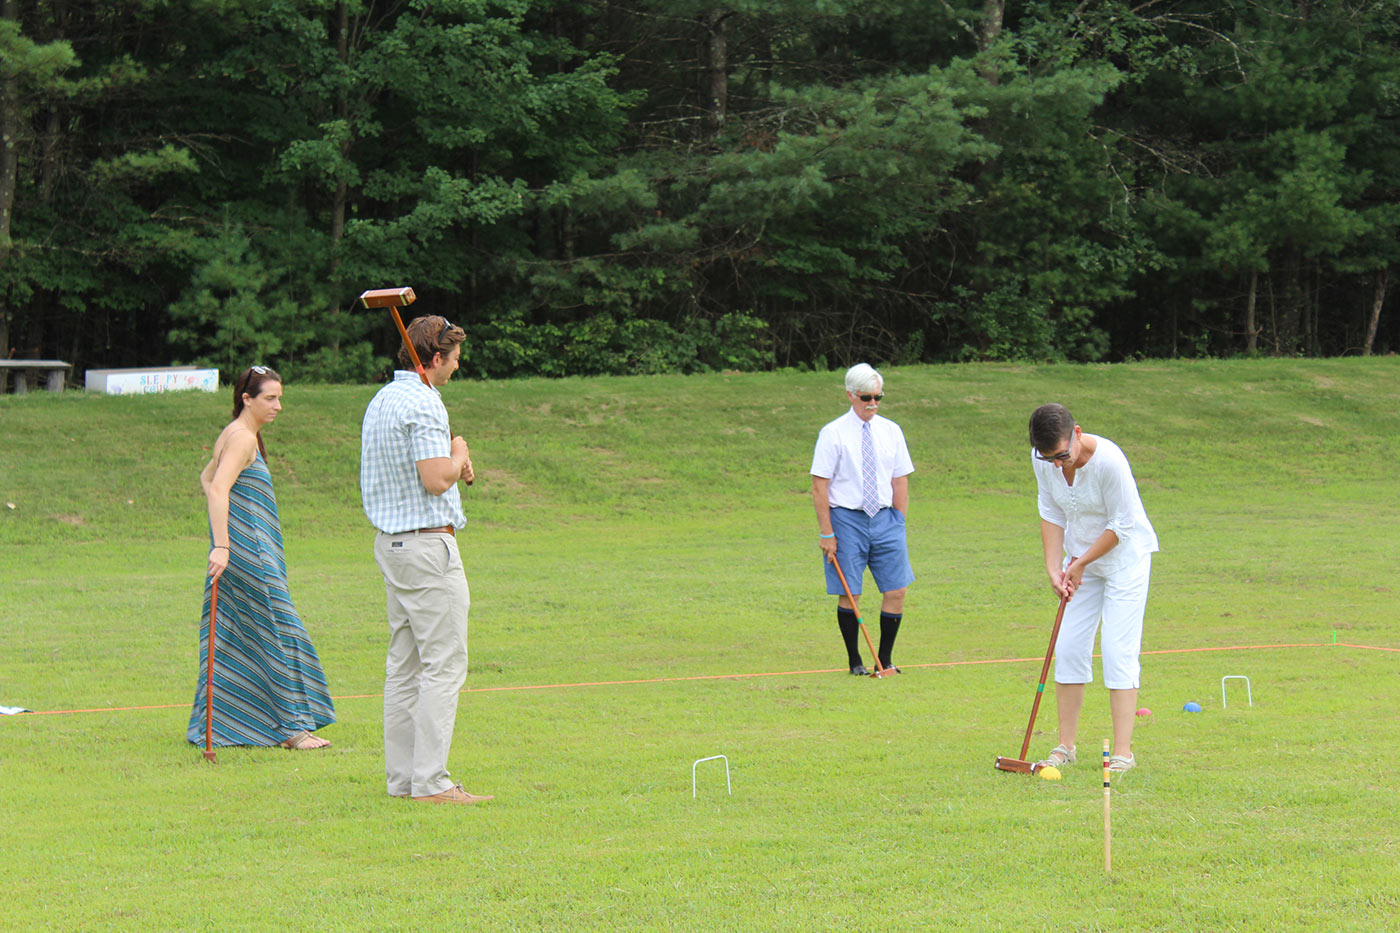 Group of people playing croquet on grass